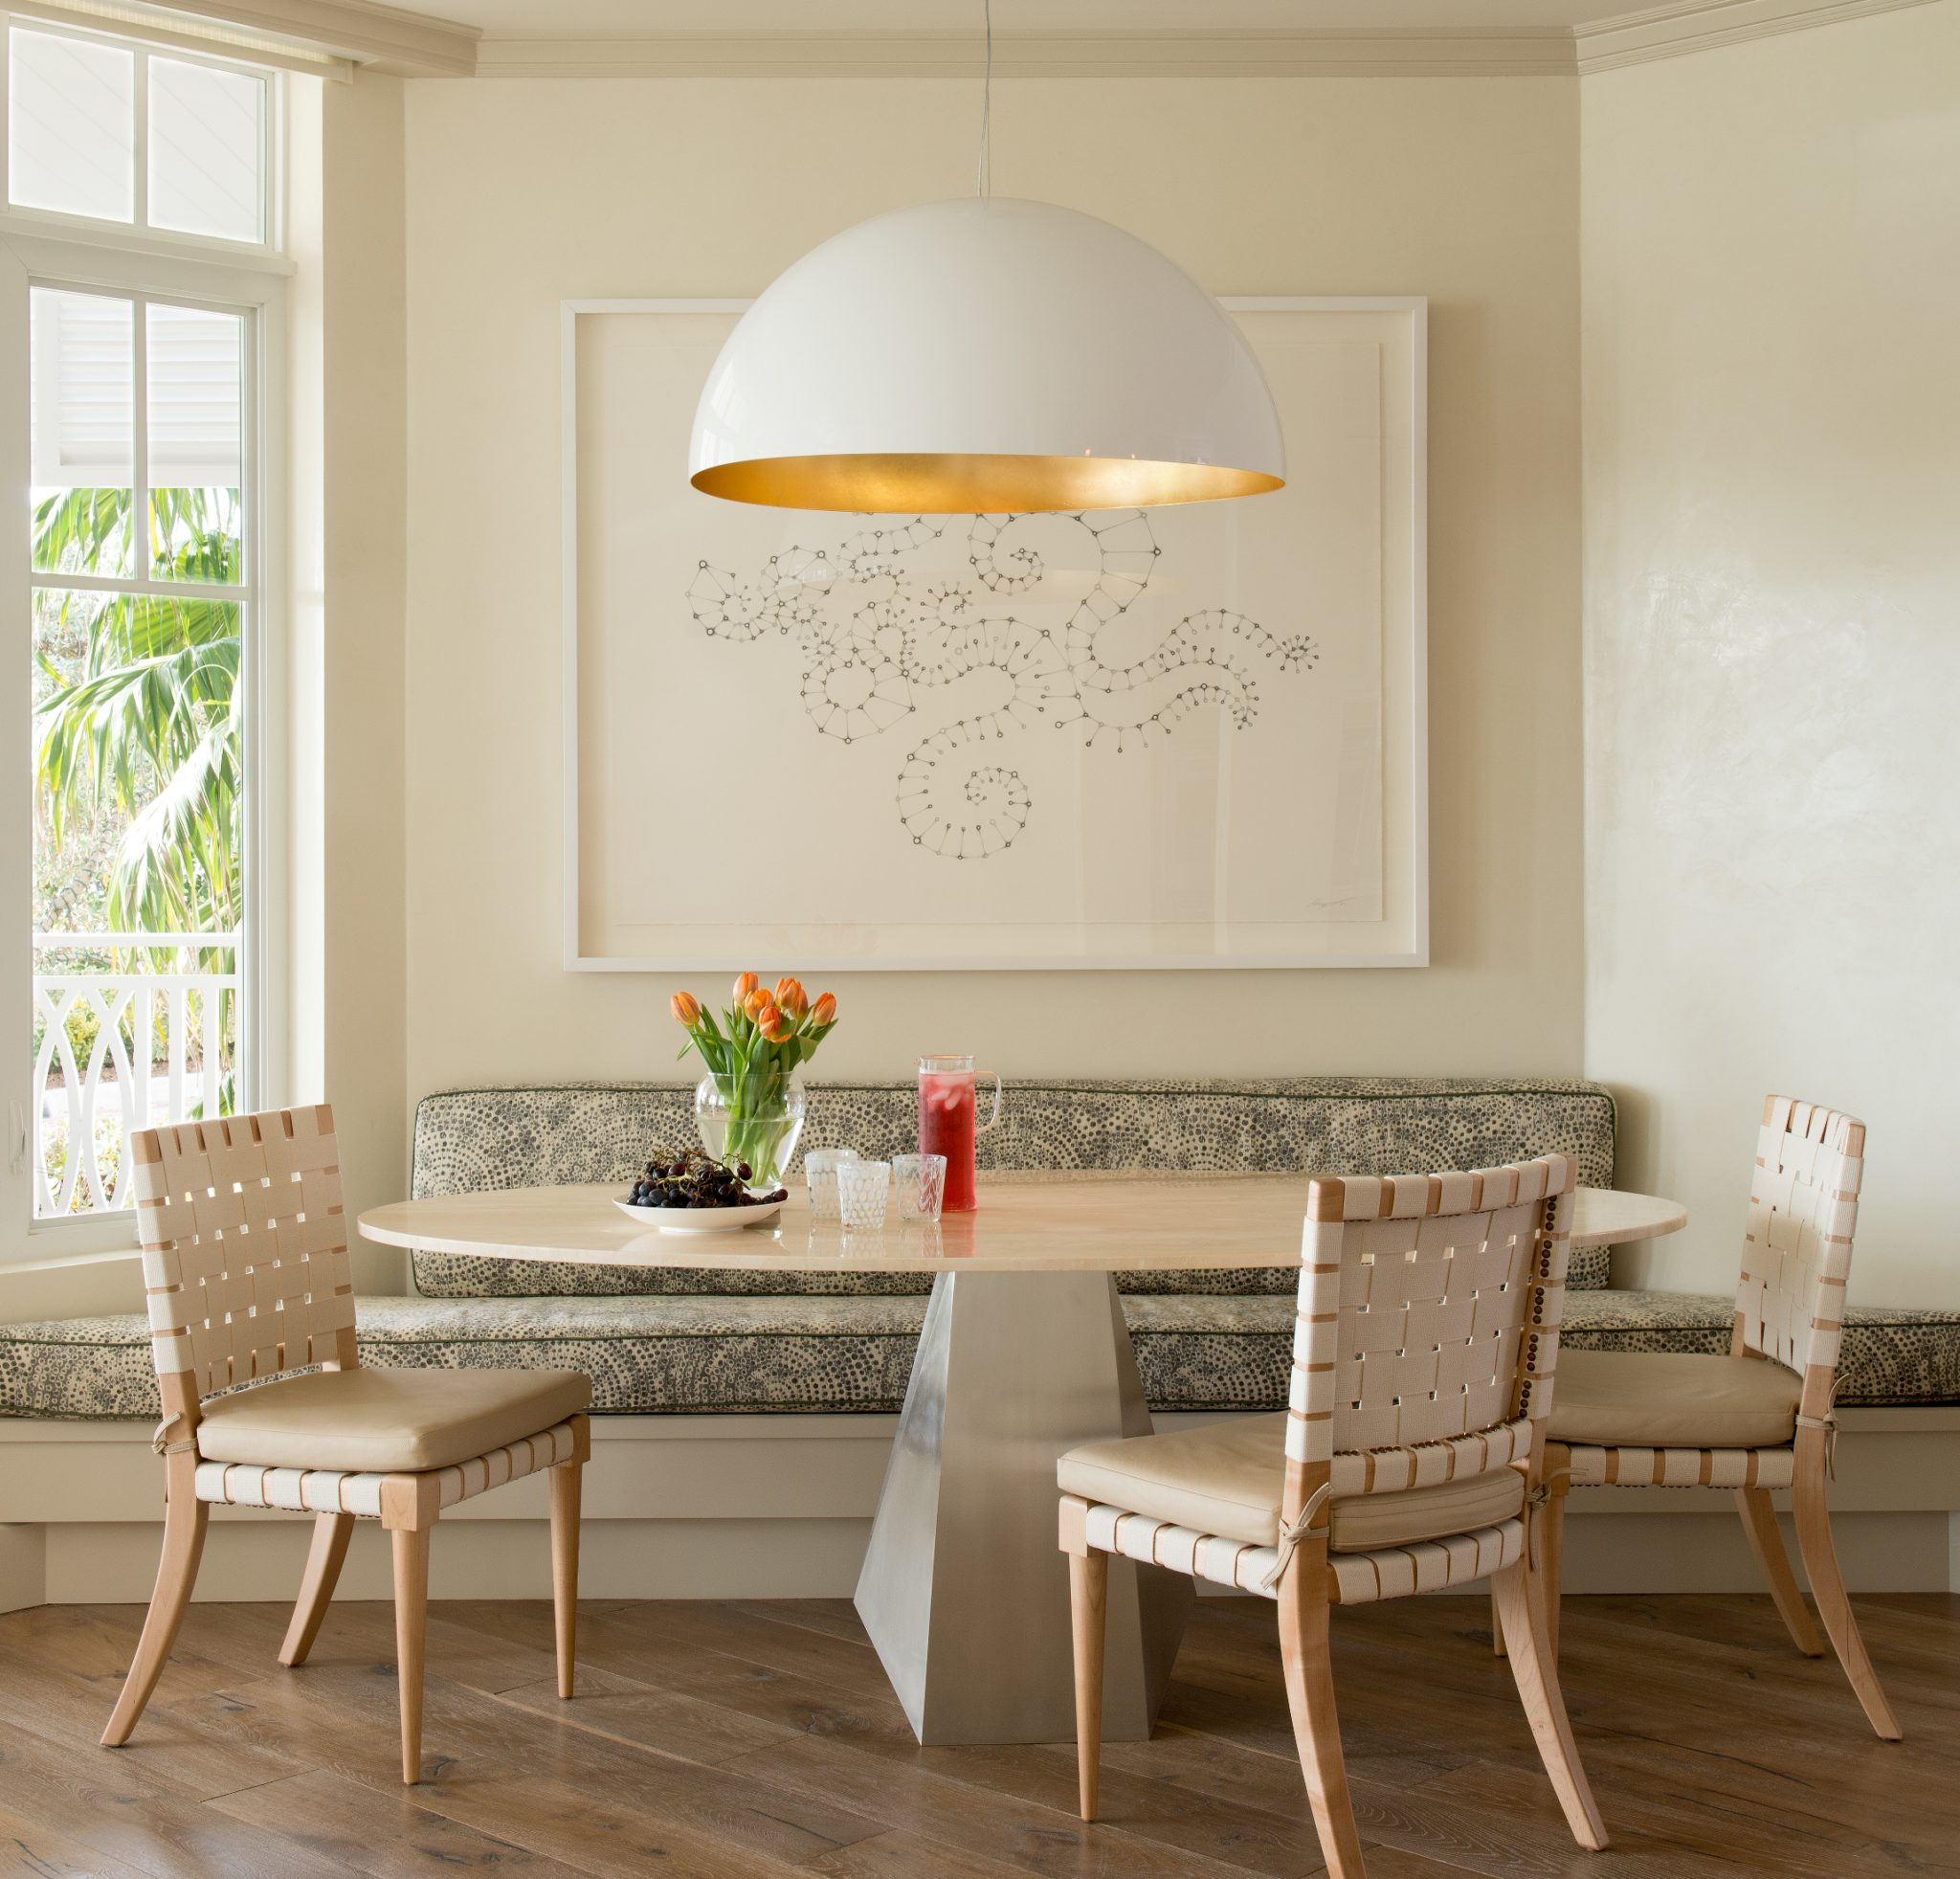 Breakfast nook by Huntley & Co. Interior Design